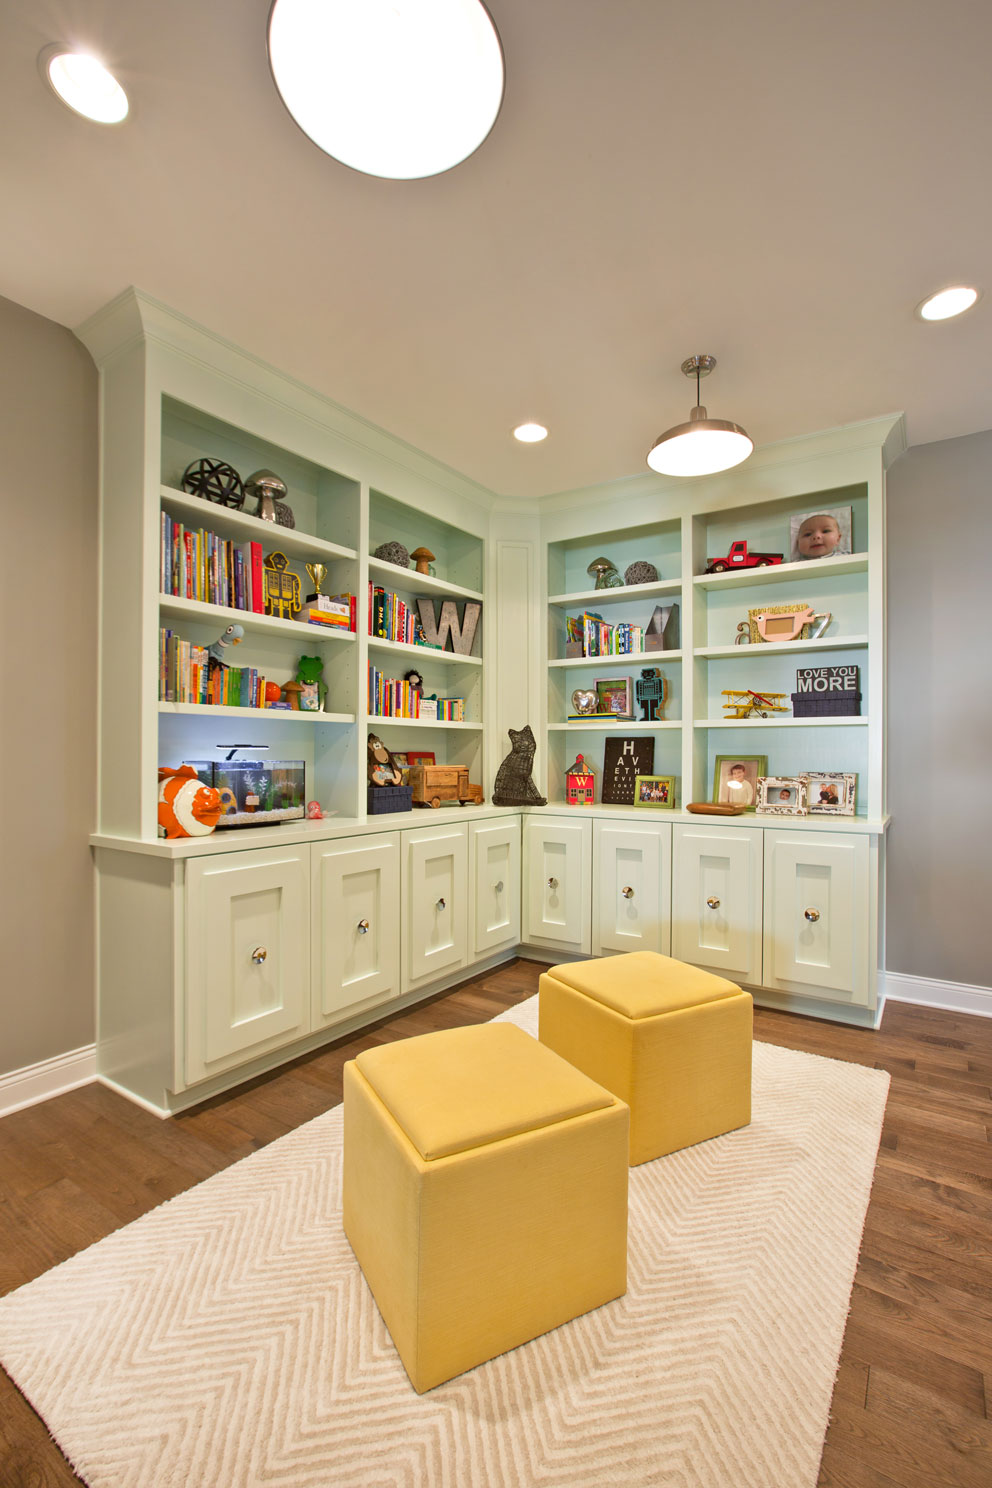 Courtney Casteel, Interior Design Playroom design